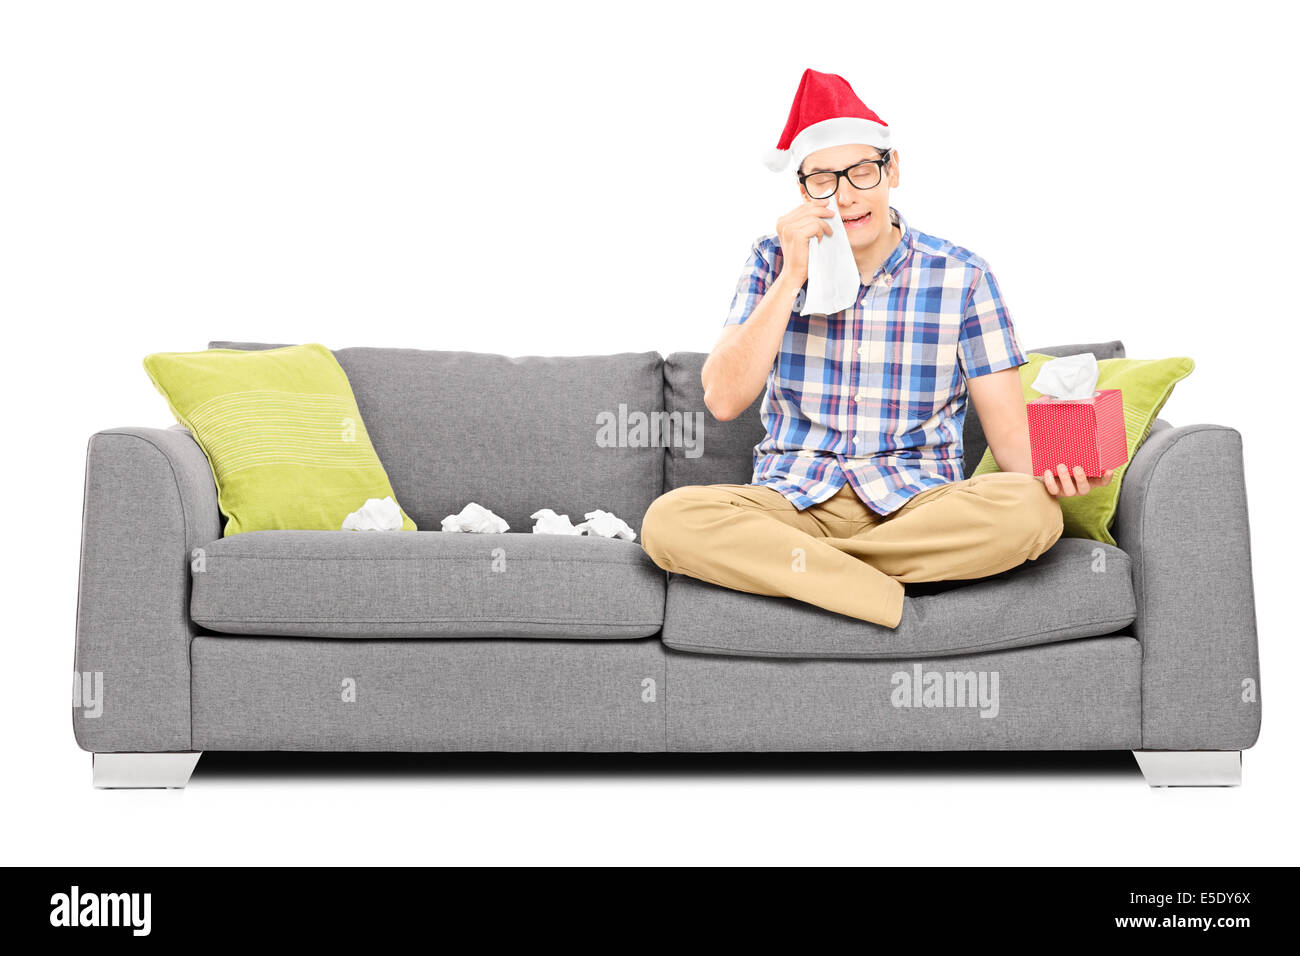 Sad man with Santa hat wiping his eyes from crying - Stock Image